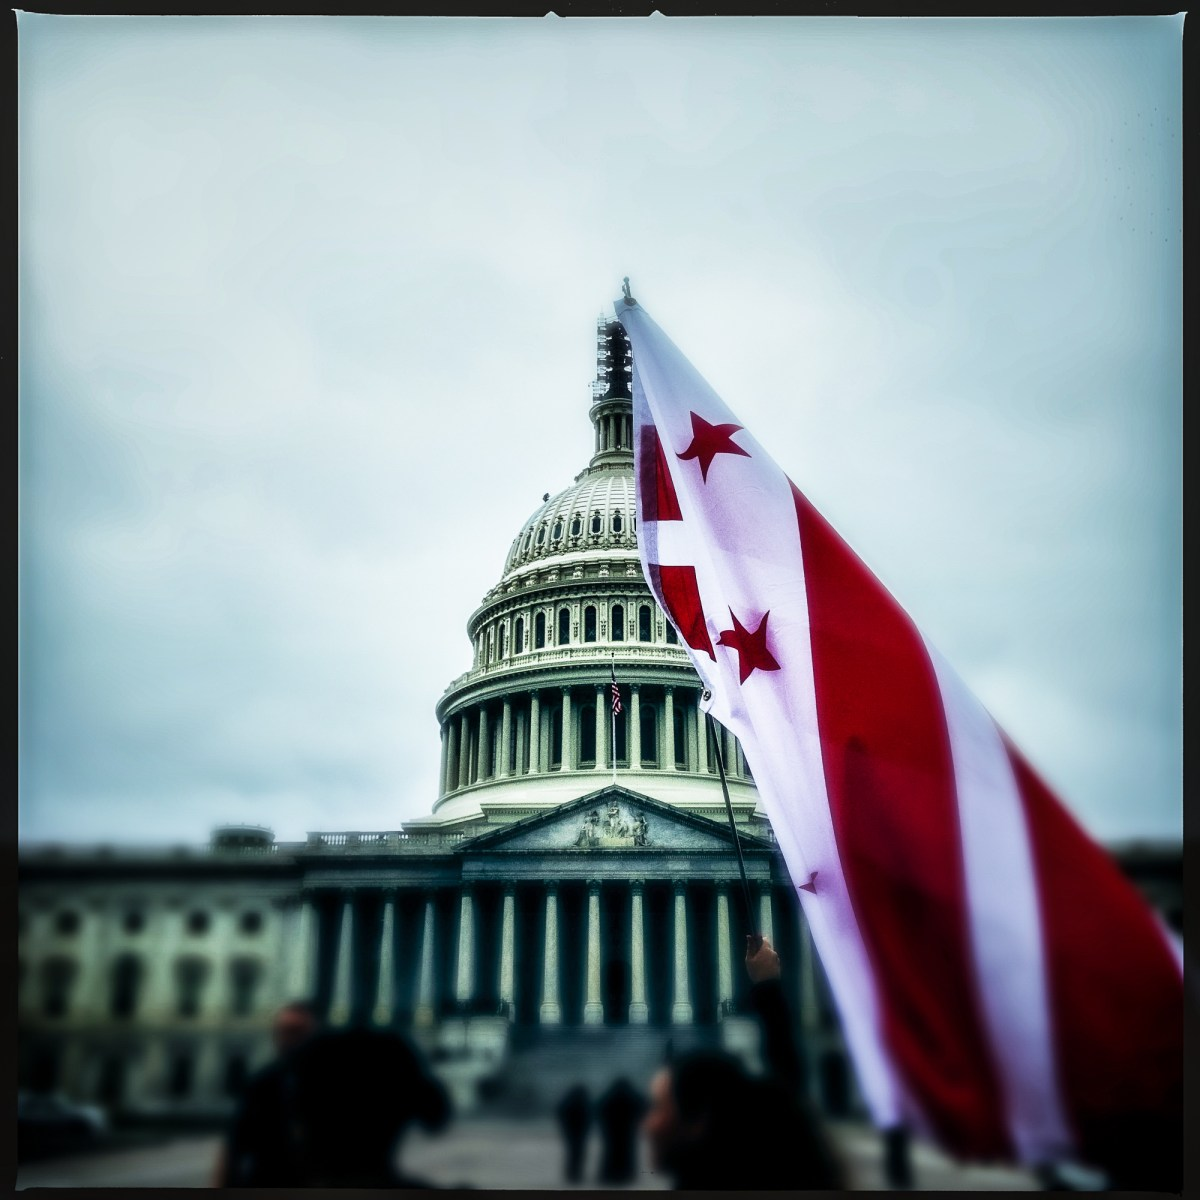 The D.C. flag being waved outside the U.S. Capitol